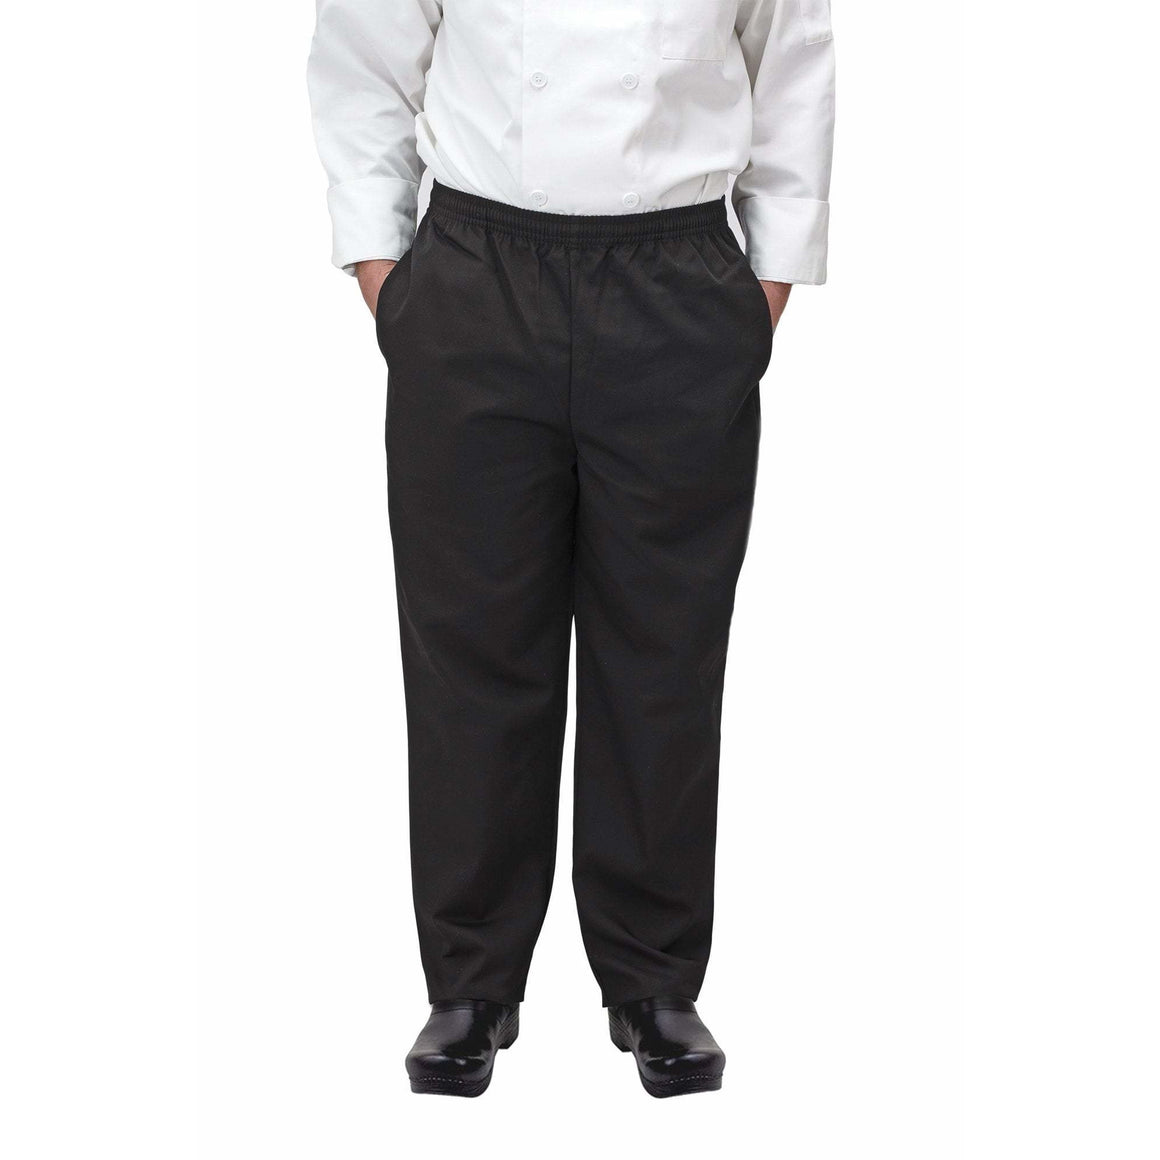 Winco - UNF-2KXXL - Chef pants, black, 2X - Apparel - Maltese & Co New and Used  restaurant Equipment